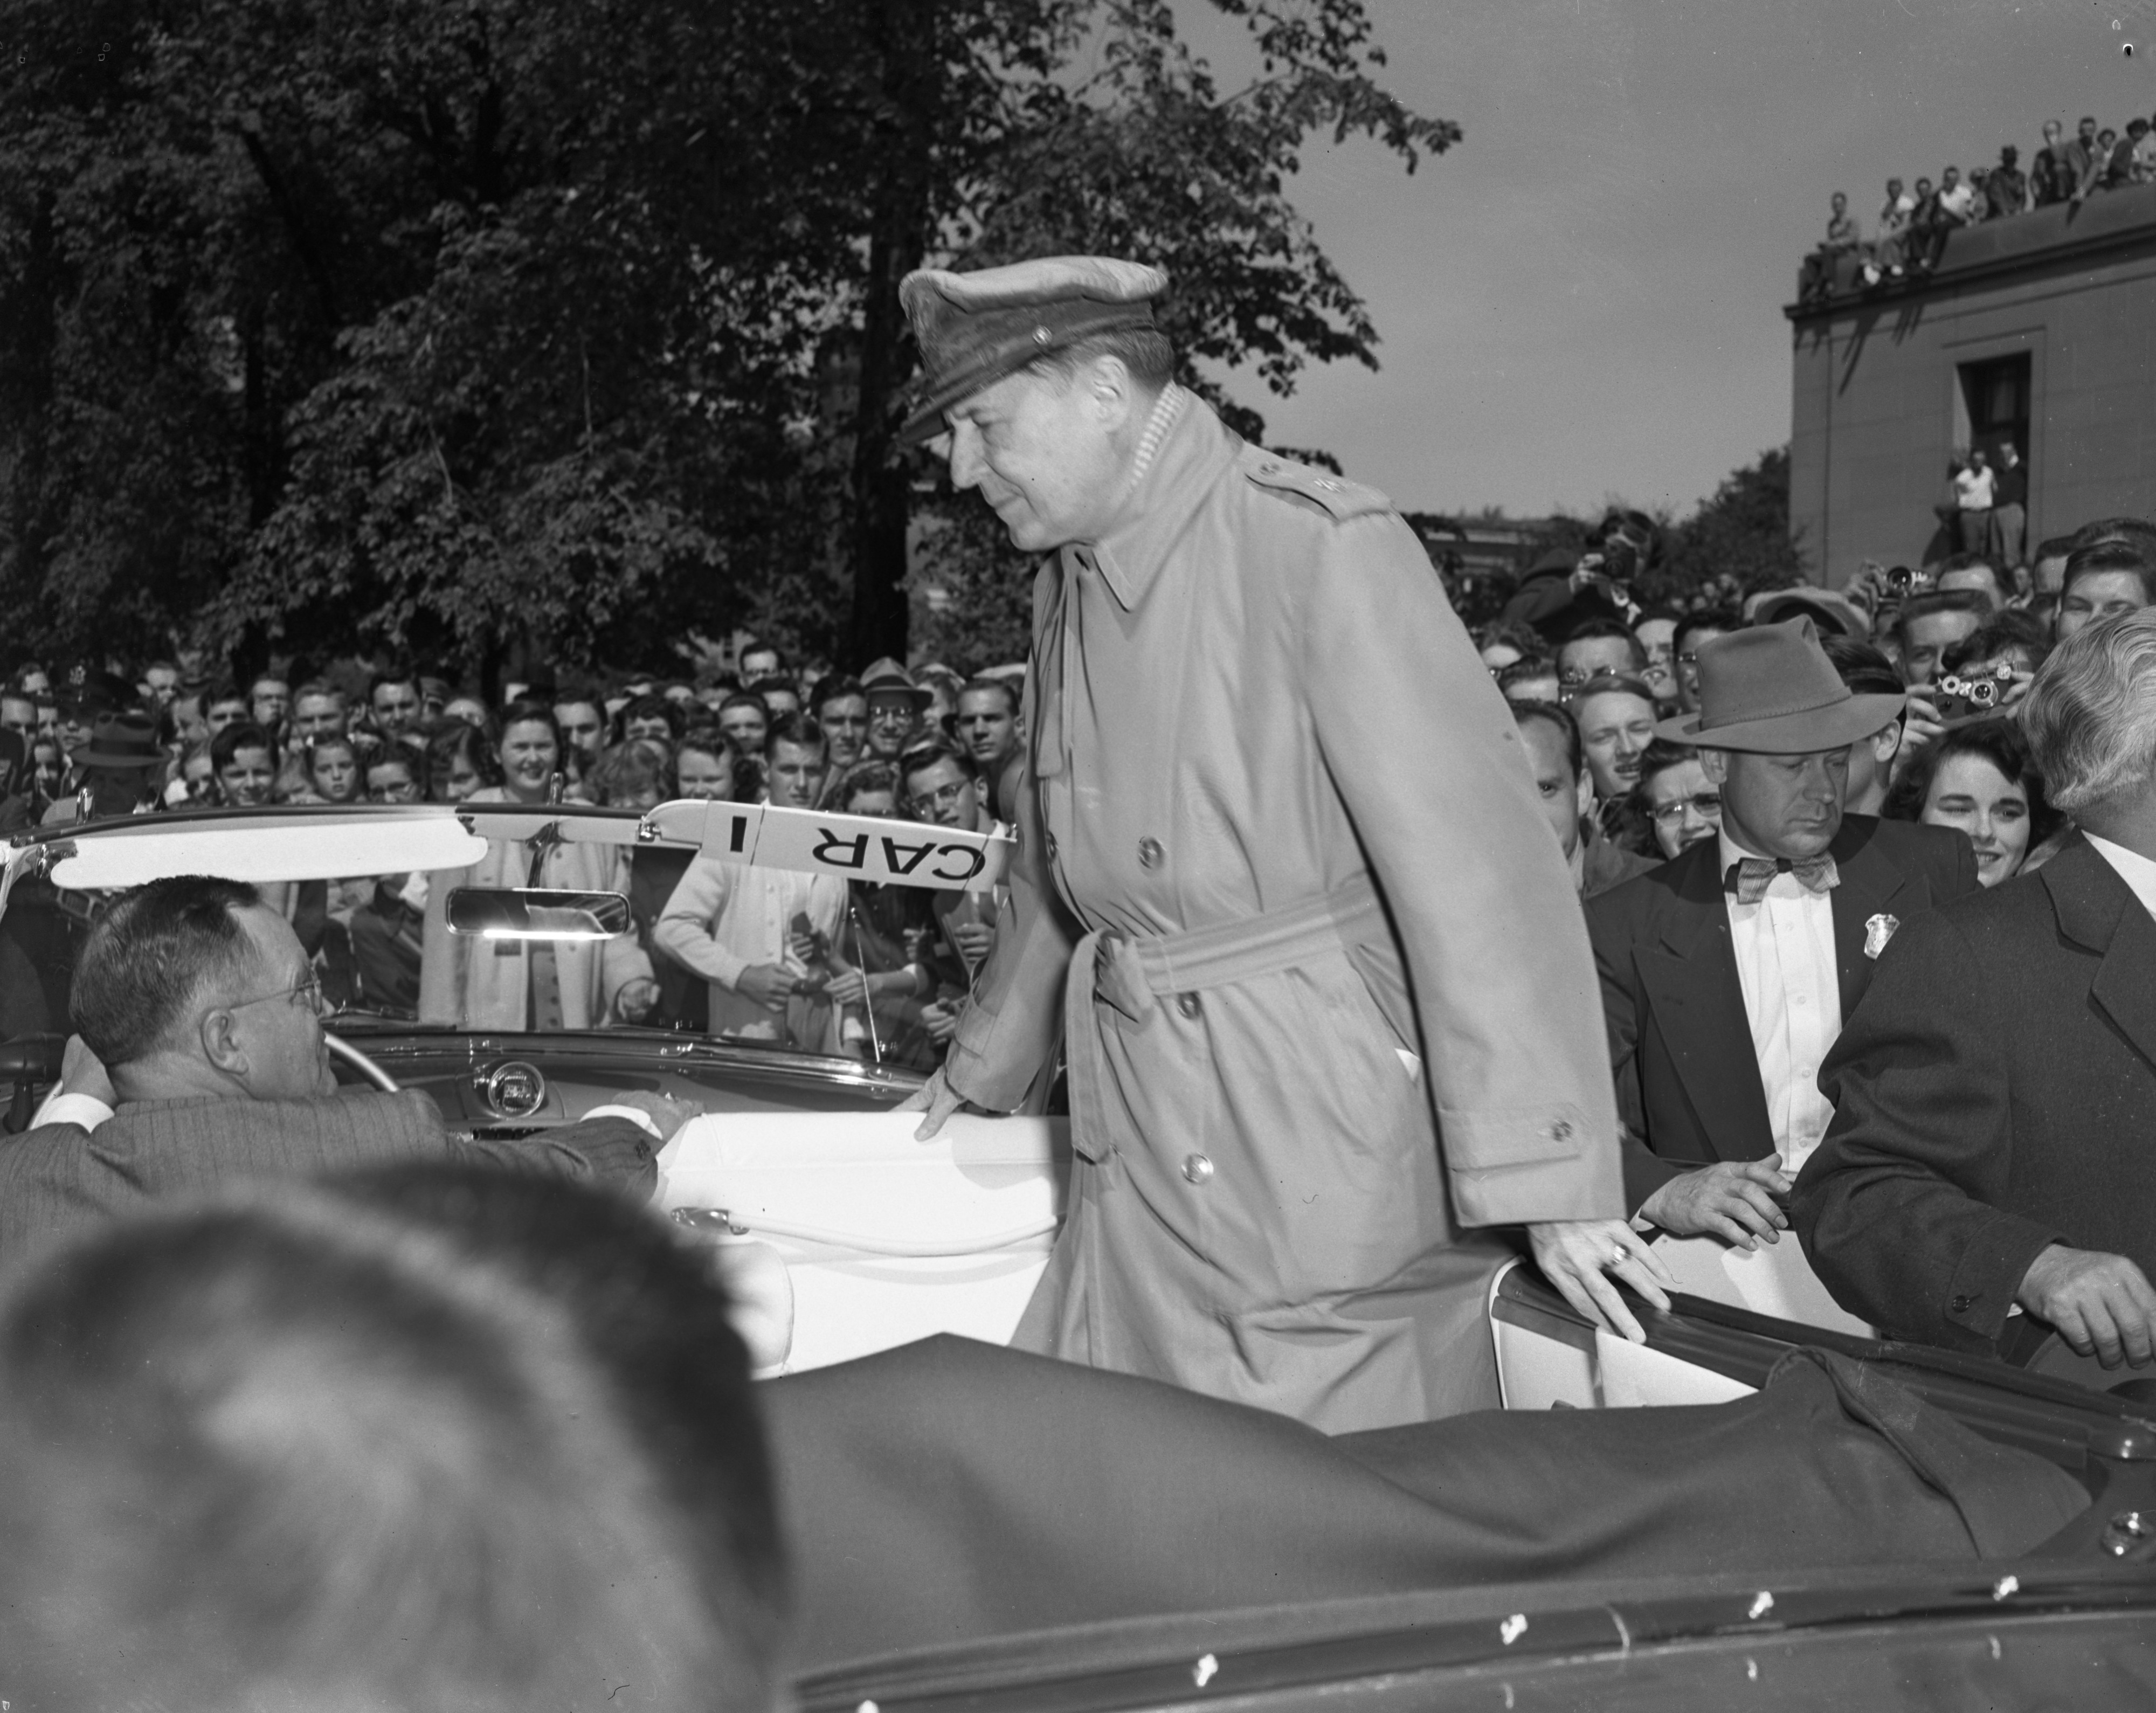 General Douglas MacArthur visits Ann Arbor, May 16, 1952 image